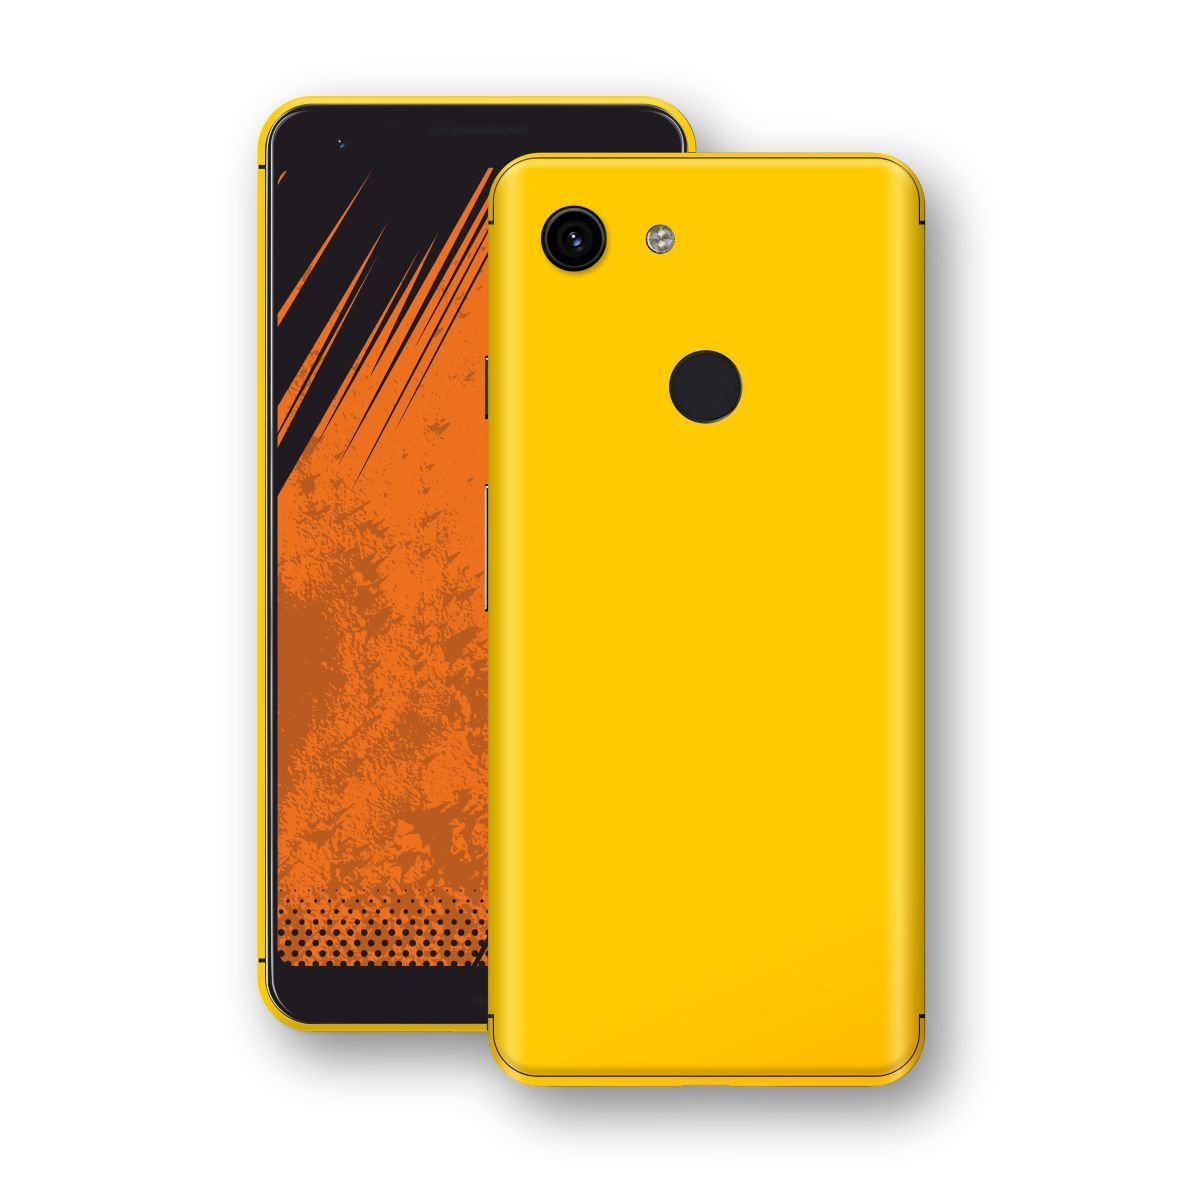 Google Pixel 3a XL Golden Yellow Glossy Gloss Finish Skin, Decal, Wrap, Protector, Cover by EasySkinz | EasySkinz.com